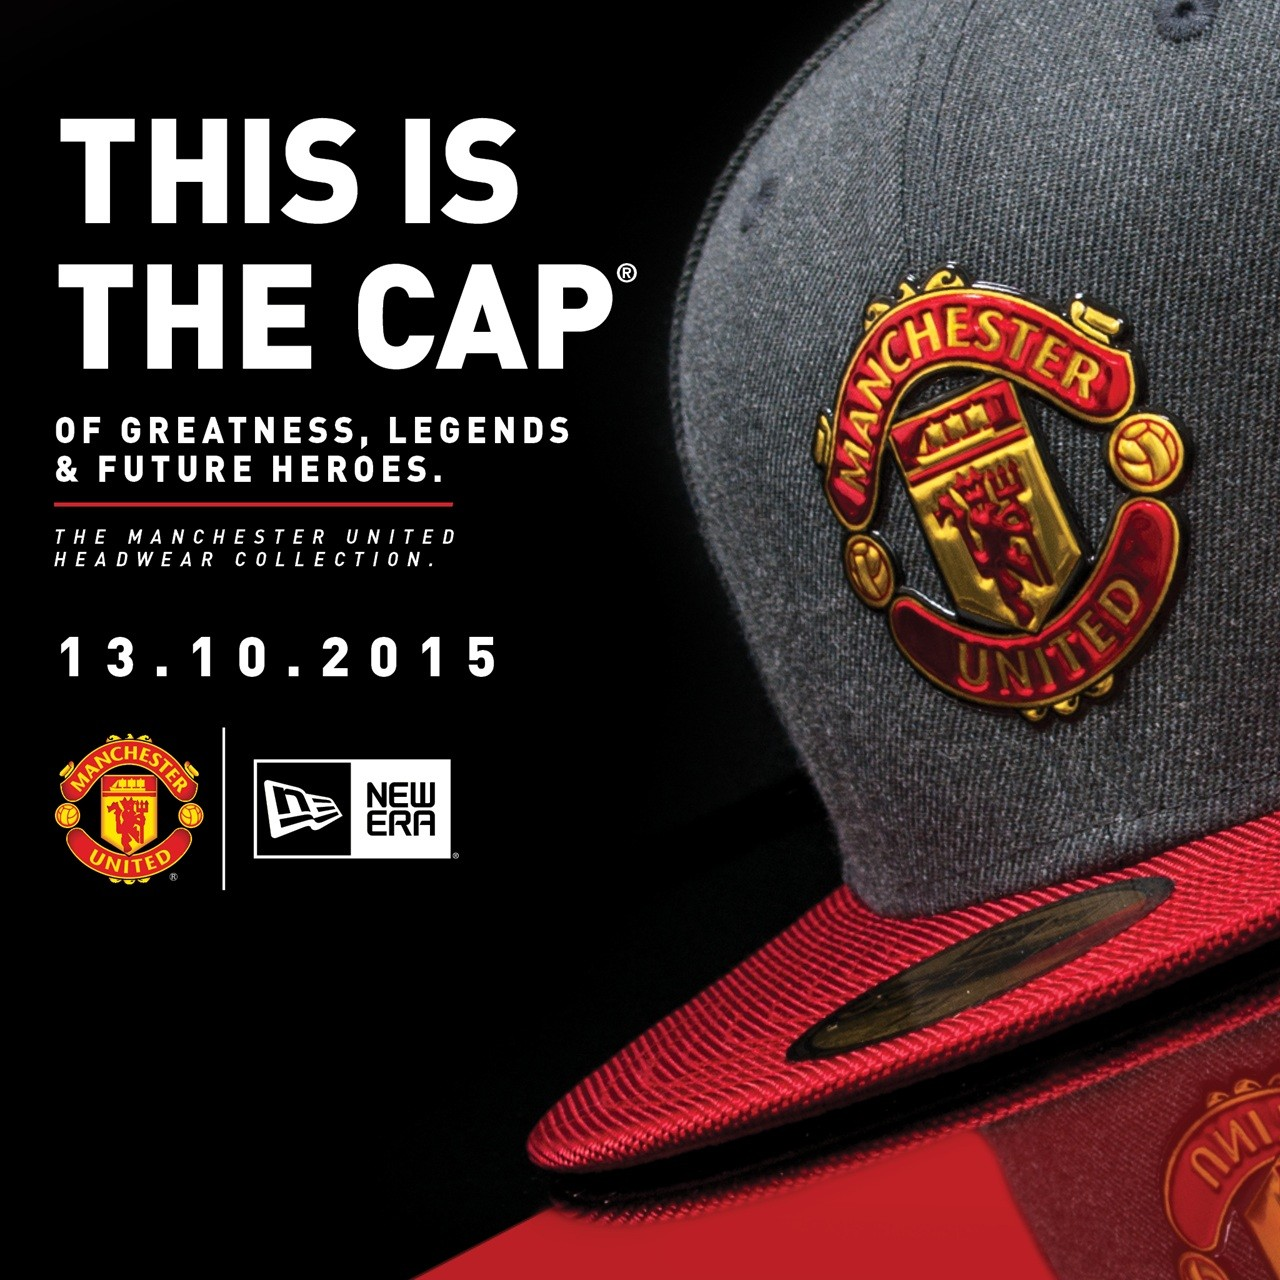 Manchester United Partner With New Era To Launch Headwear